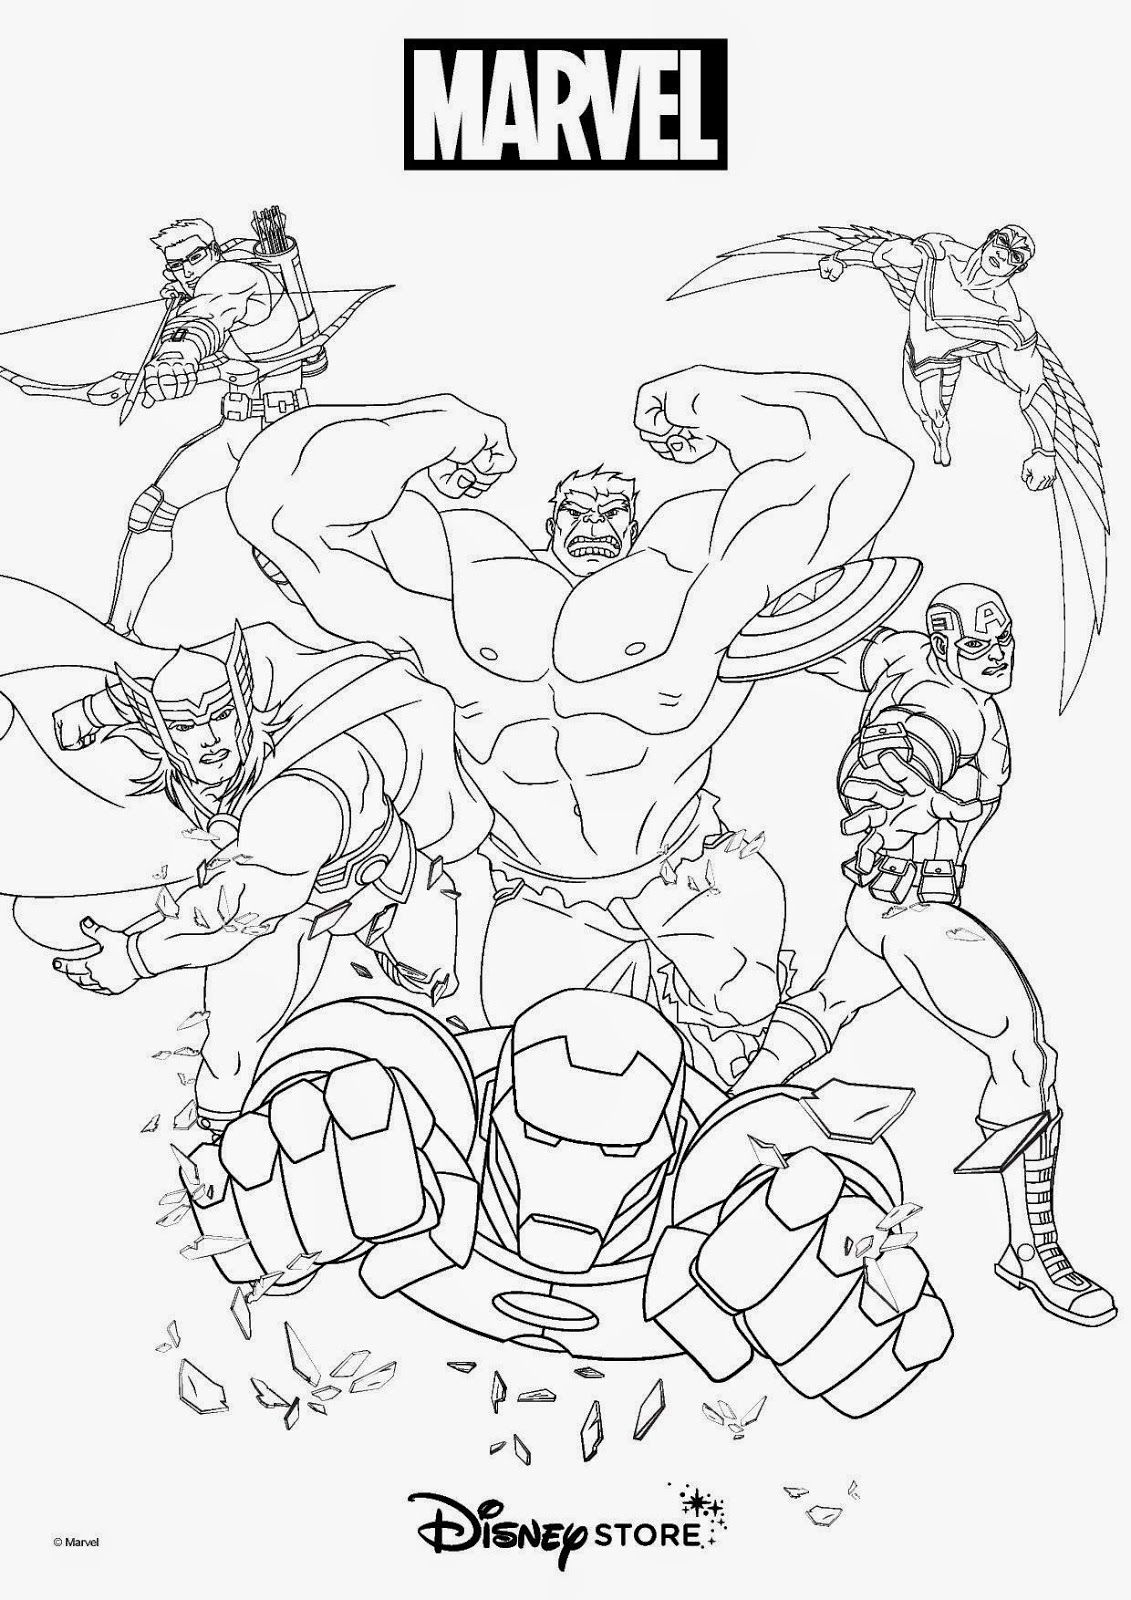 Marvel Jpg 1131 1600 Superhero Coloring Pages Hulk Coloring Pages Spiderman Coloring